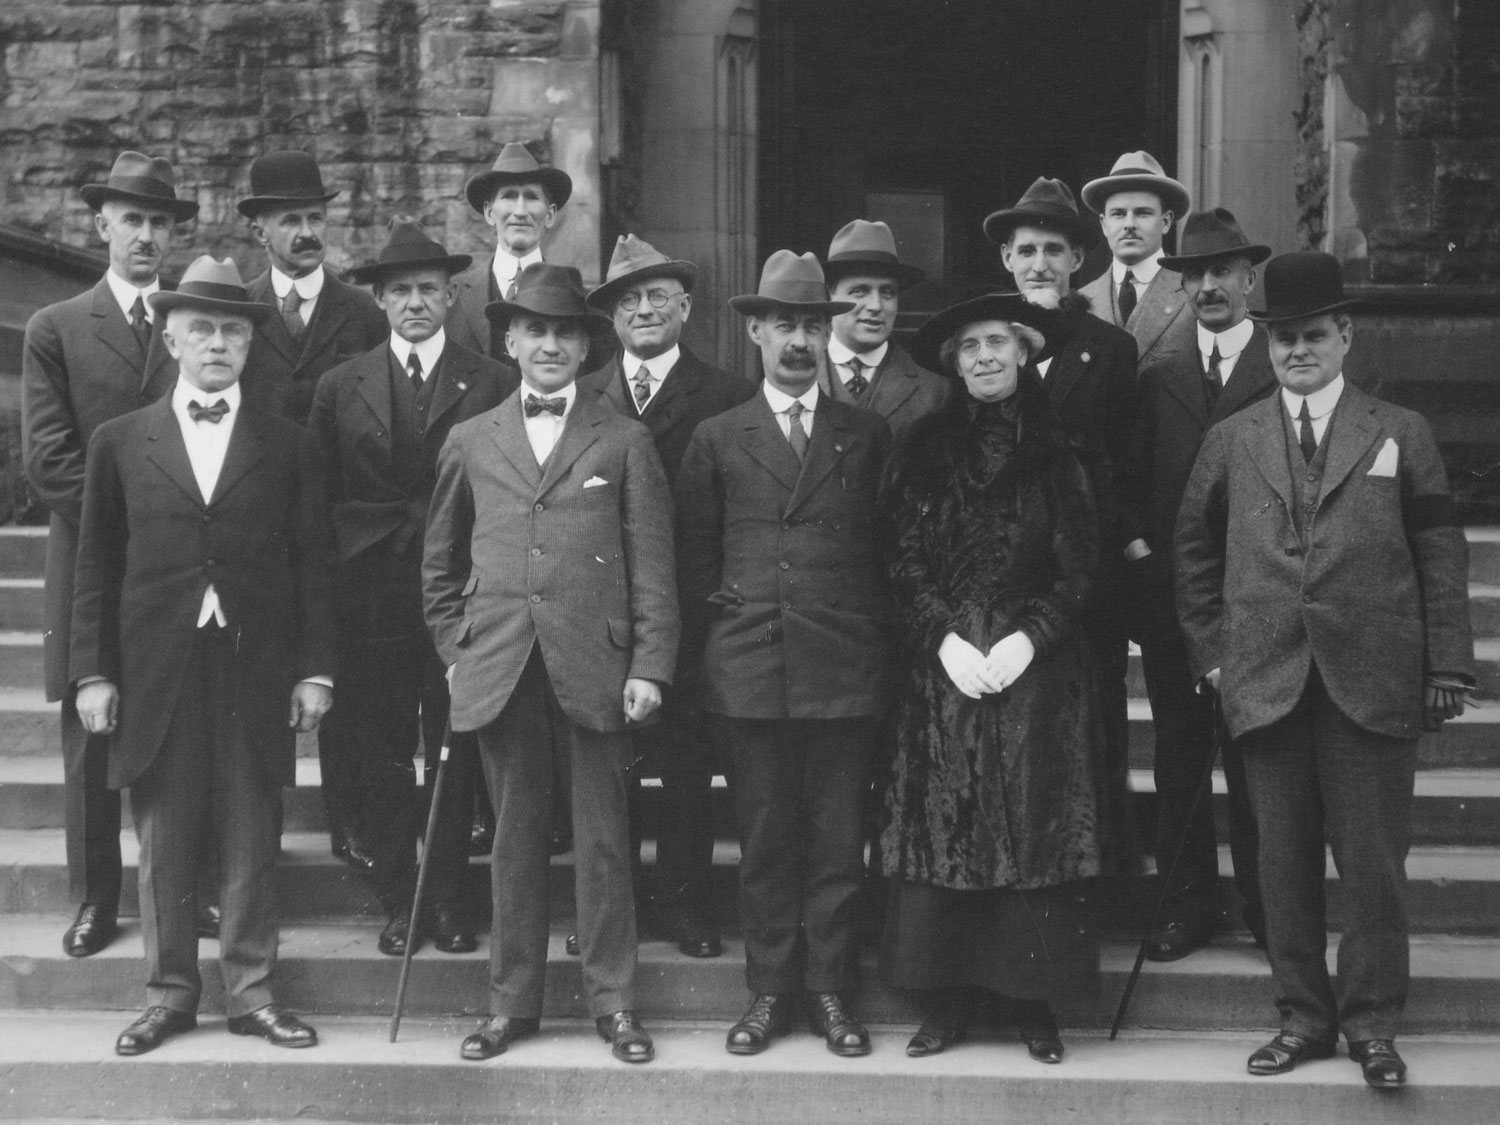 Members of the Dominion Council of Health at their first meeting, held October 7-9, 1919, consisting of provincial deputy ministers of health, the federal deputy minister of health, representatives of labour, women's groups, social service agencies and universities, including Dr. FitzGerald, standing in the rear row, third from the right.